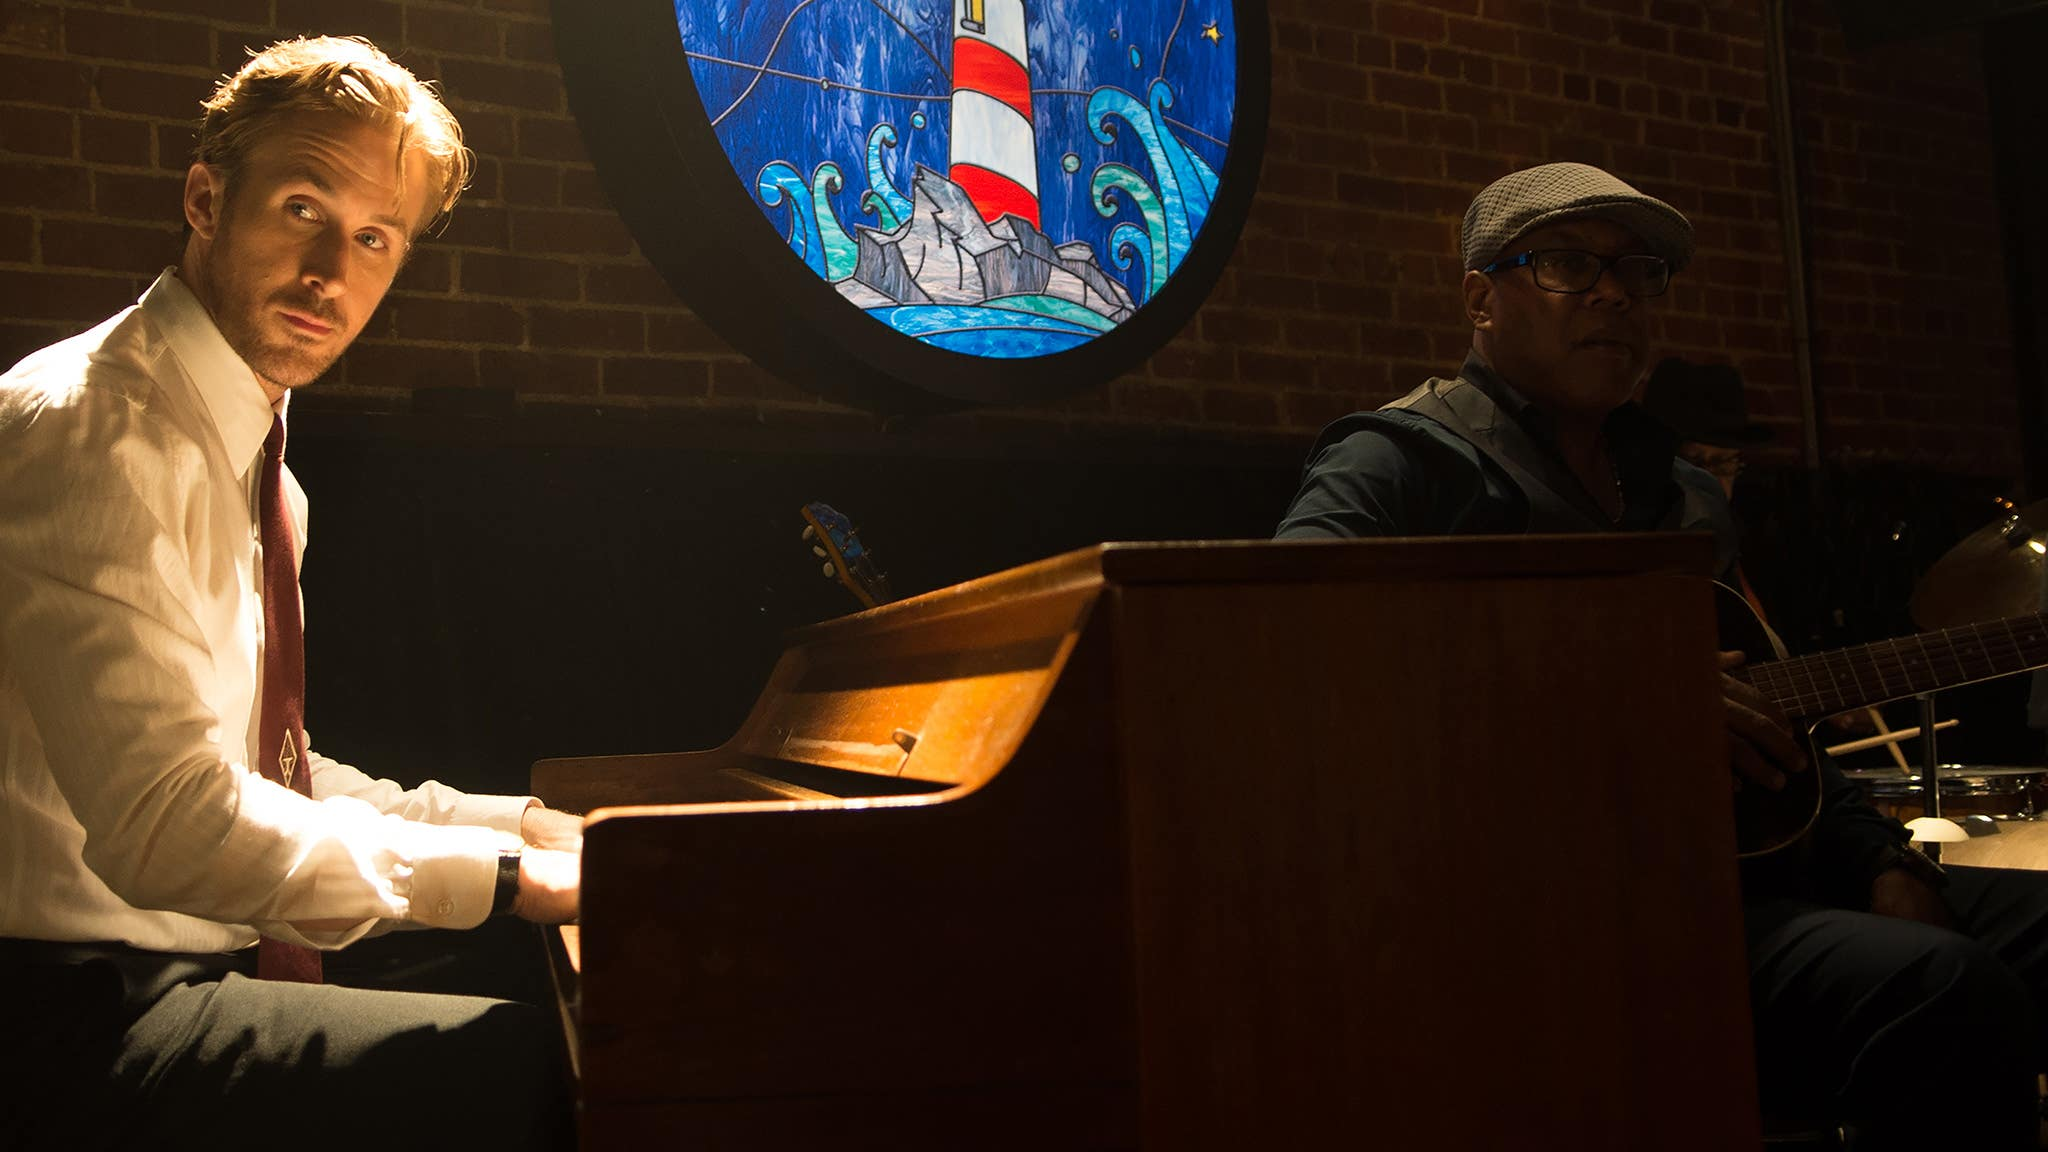 """Ryan Gosling at the Lighthouse Cafe in a scene from """"La La Land"""""""